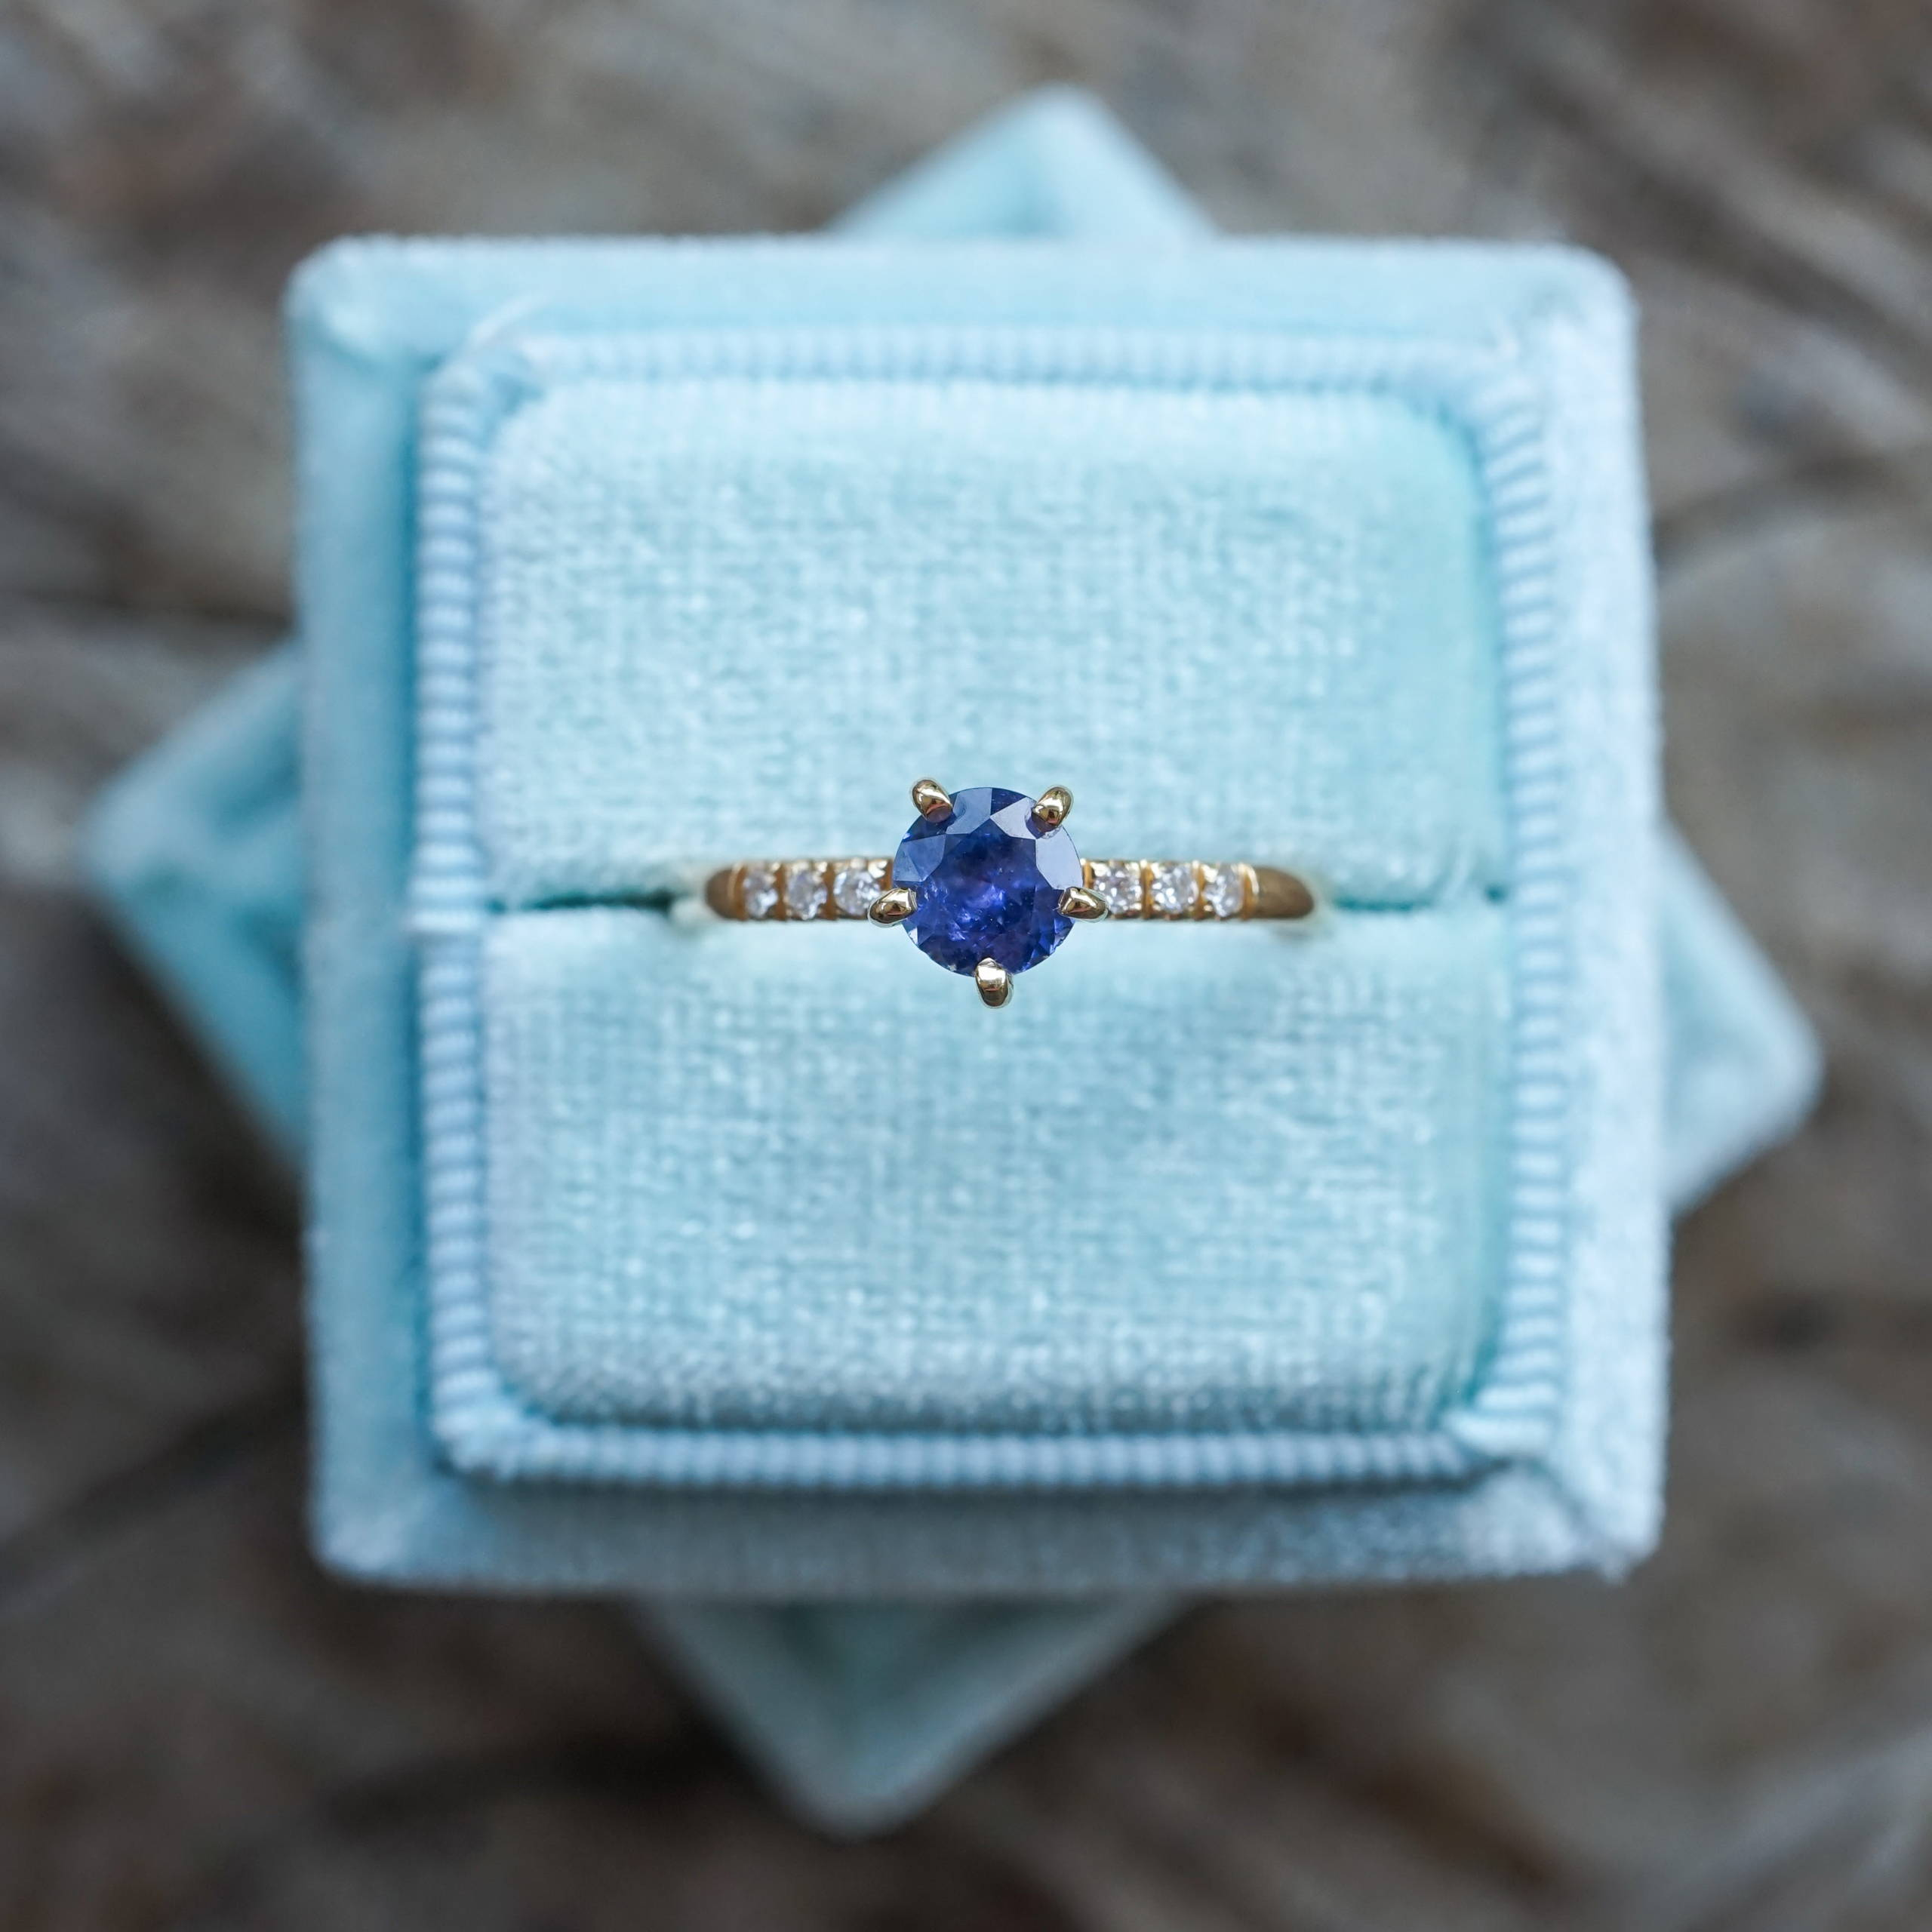 A stunning sapphire set in an ethical gold band accompanied by conflict free diamonds.